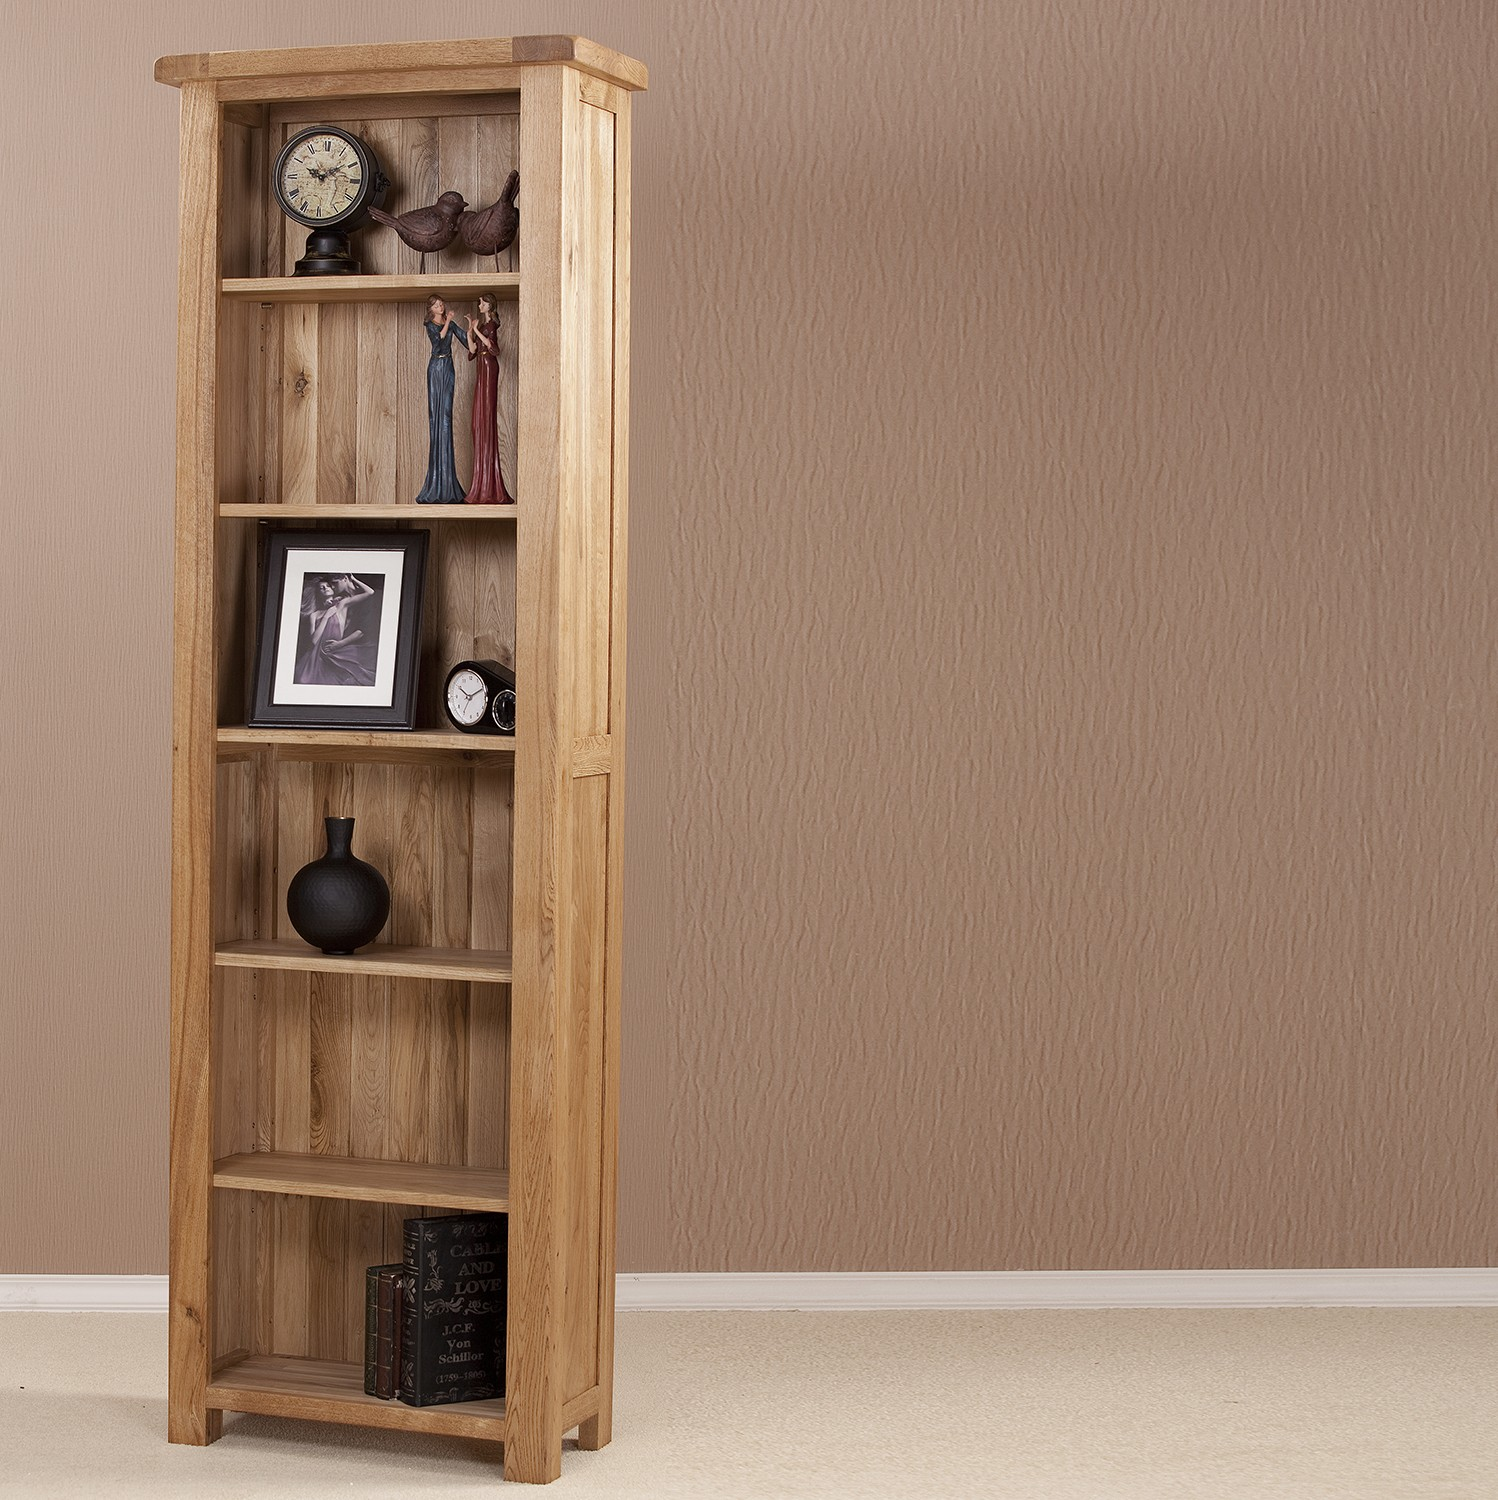 Image of: Tall narrow bookcase glow